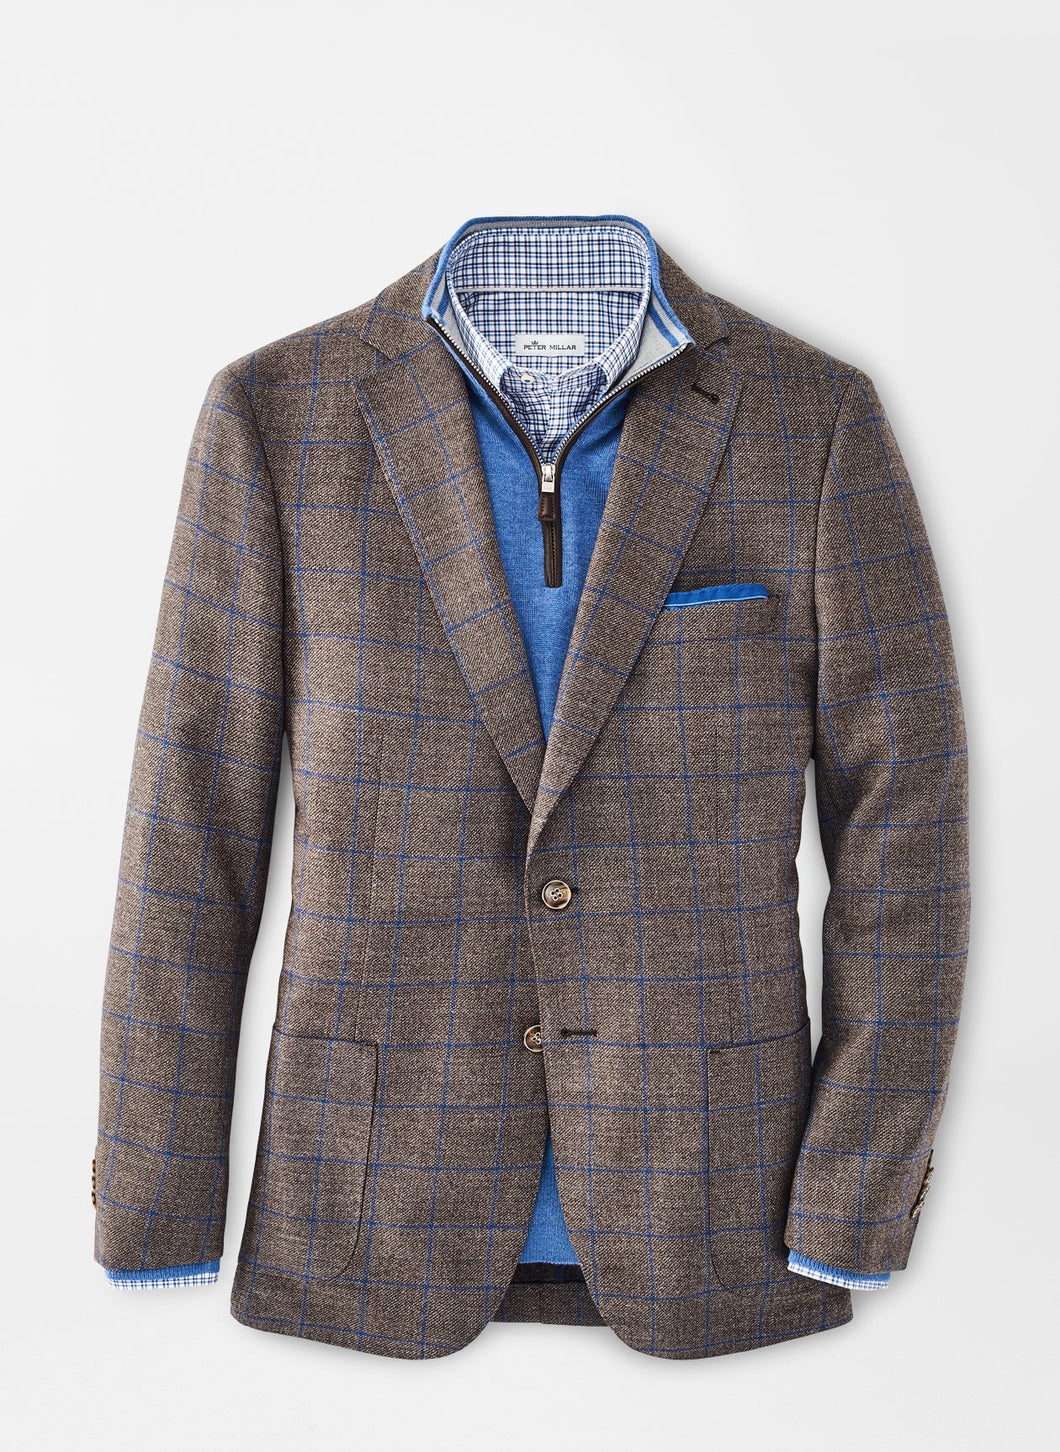 Peter Millar Classic Windowpane Soft Jacket